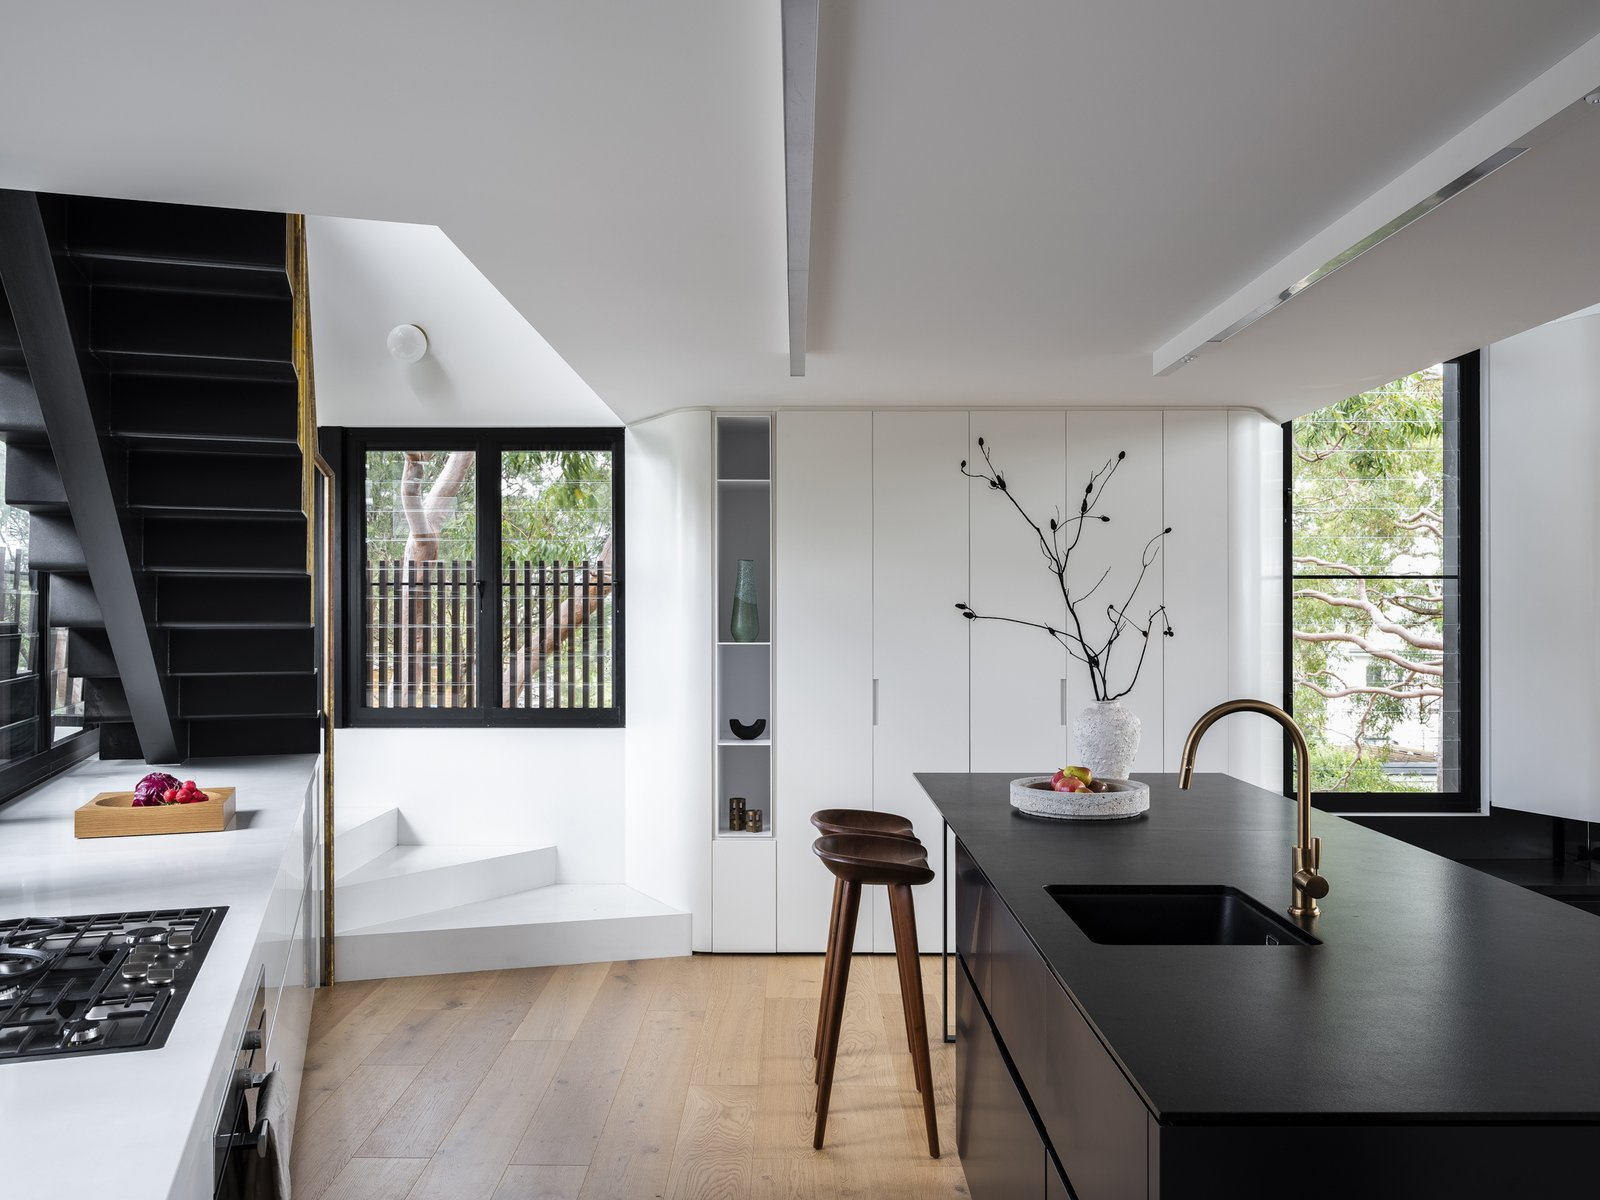 Kitchen of Higher Ground by Stafford Architecture